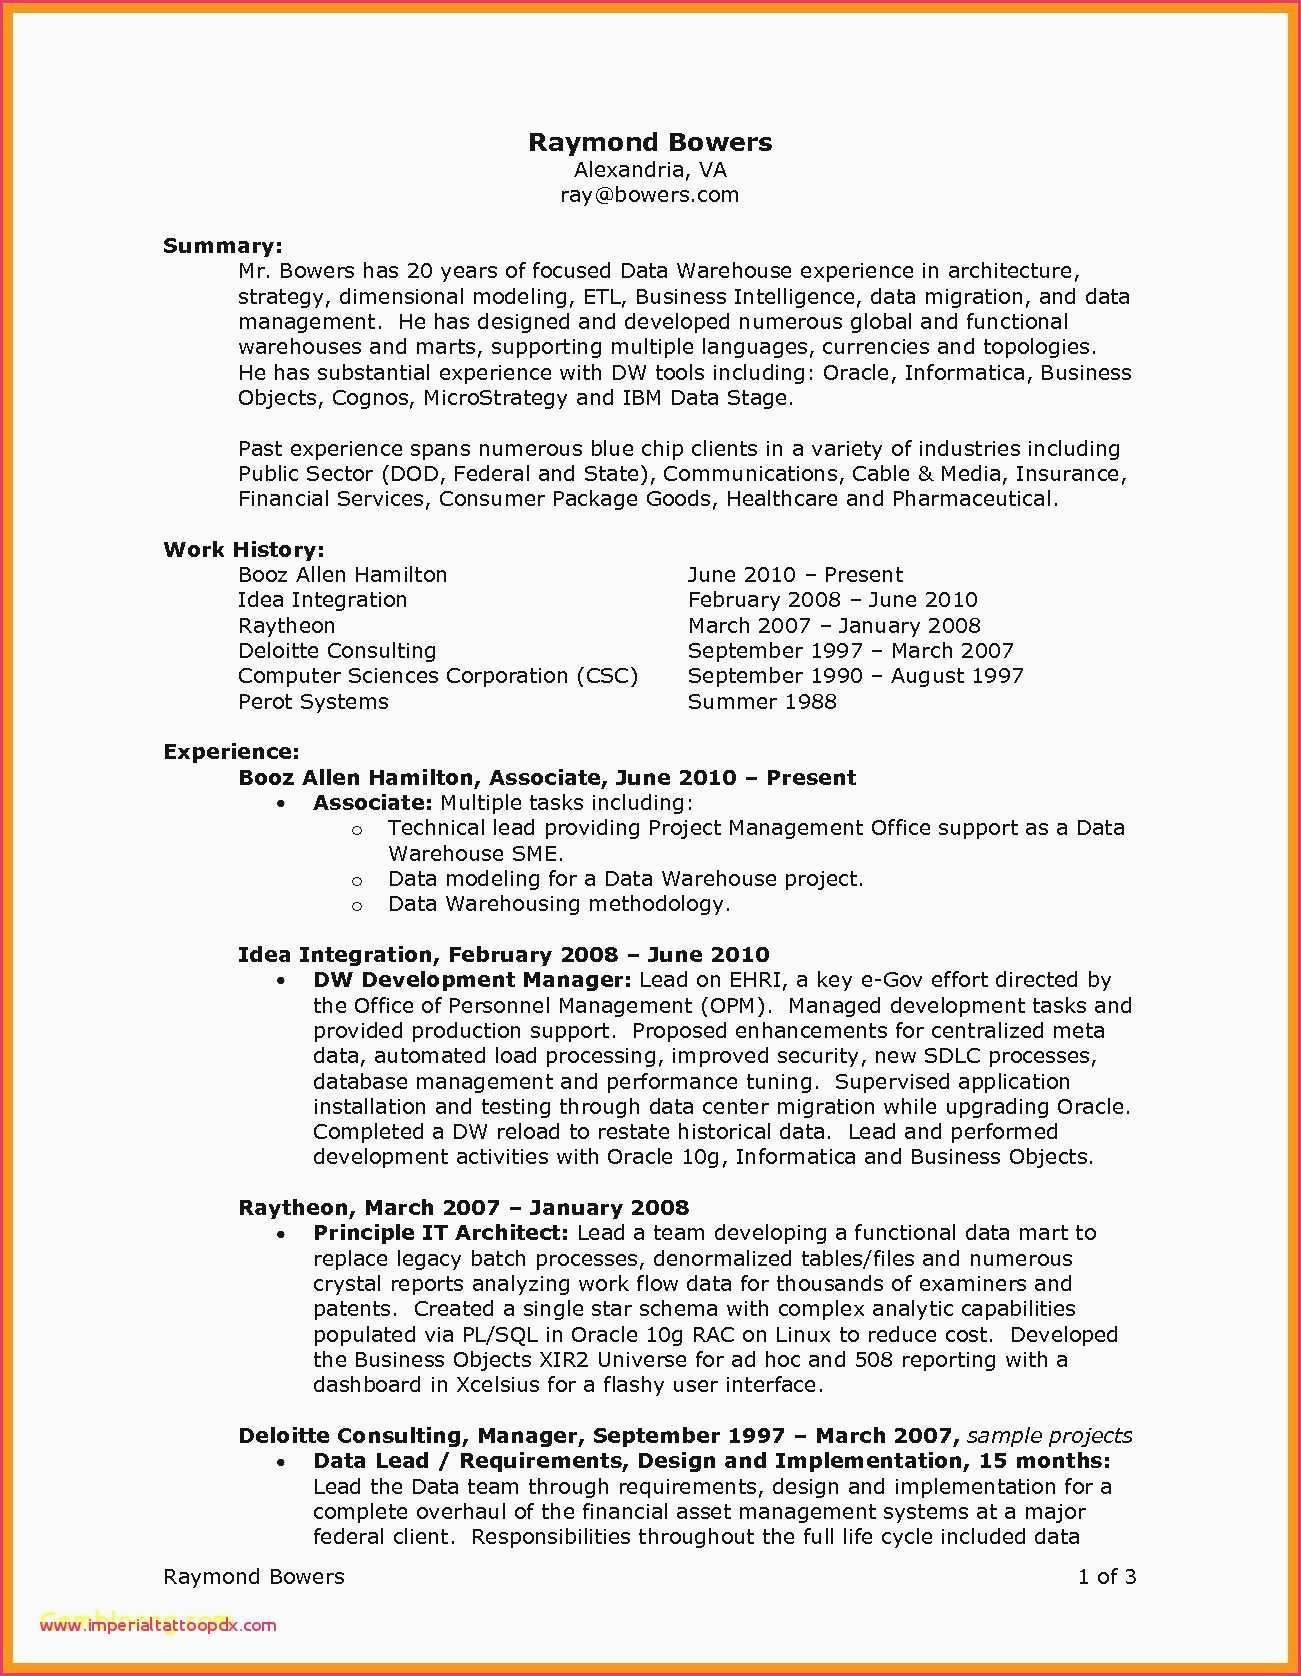 cool image of tourism management resume examples mission statement job travel and system Resume Travel And Tourism Resume Examples